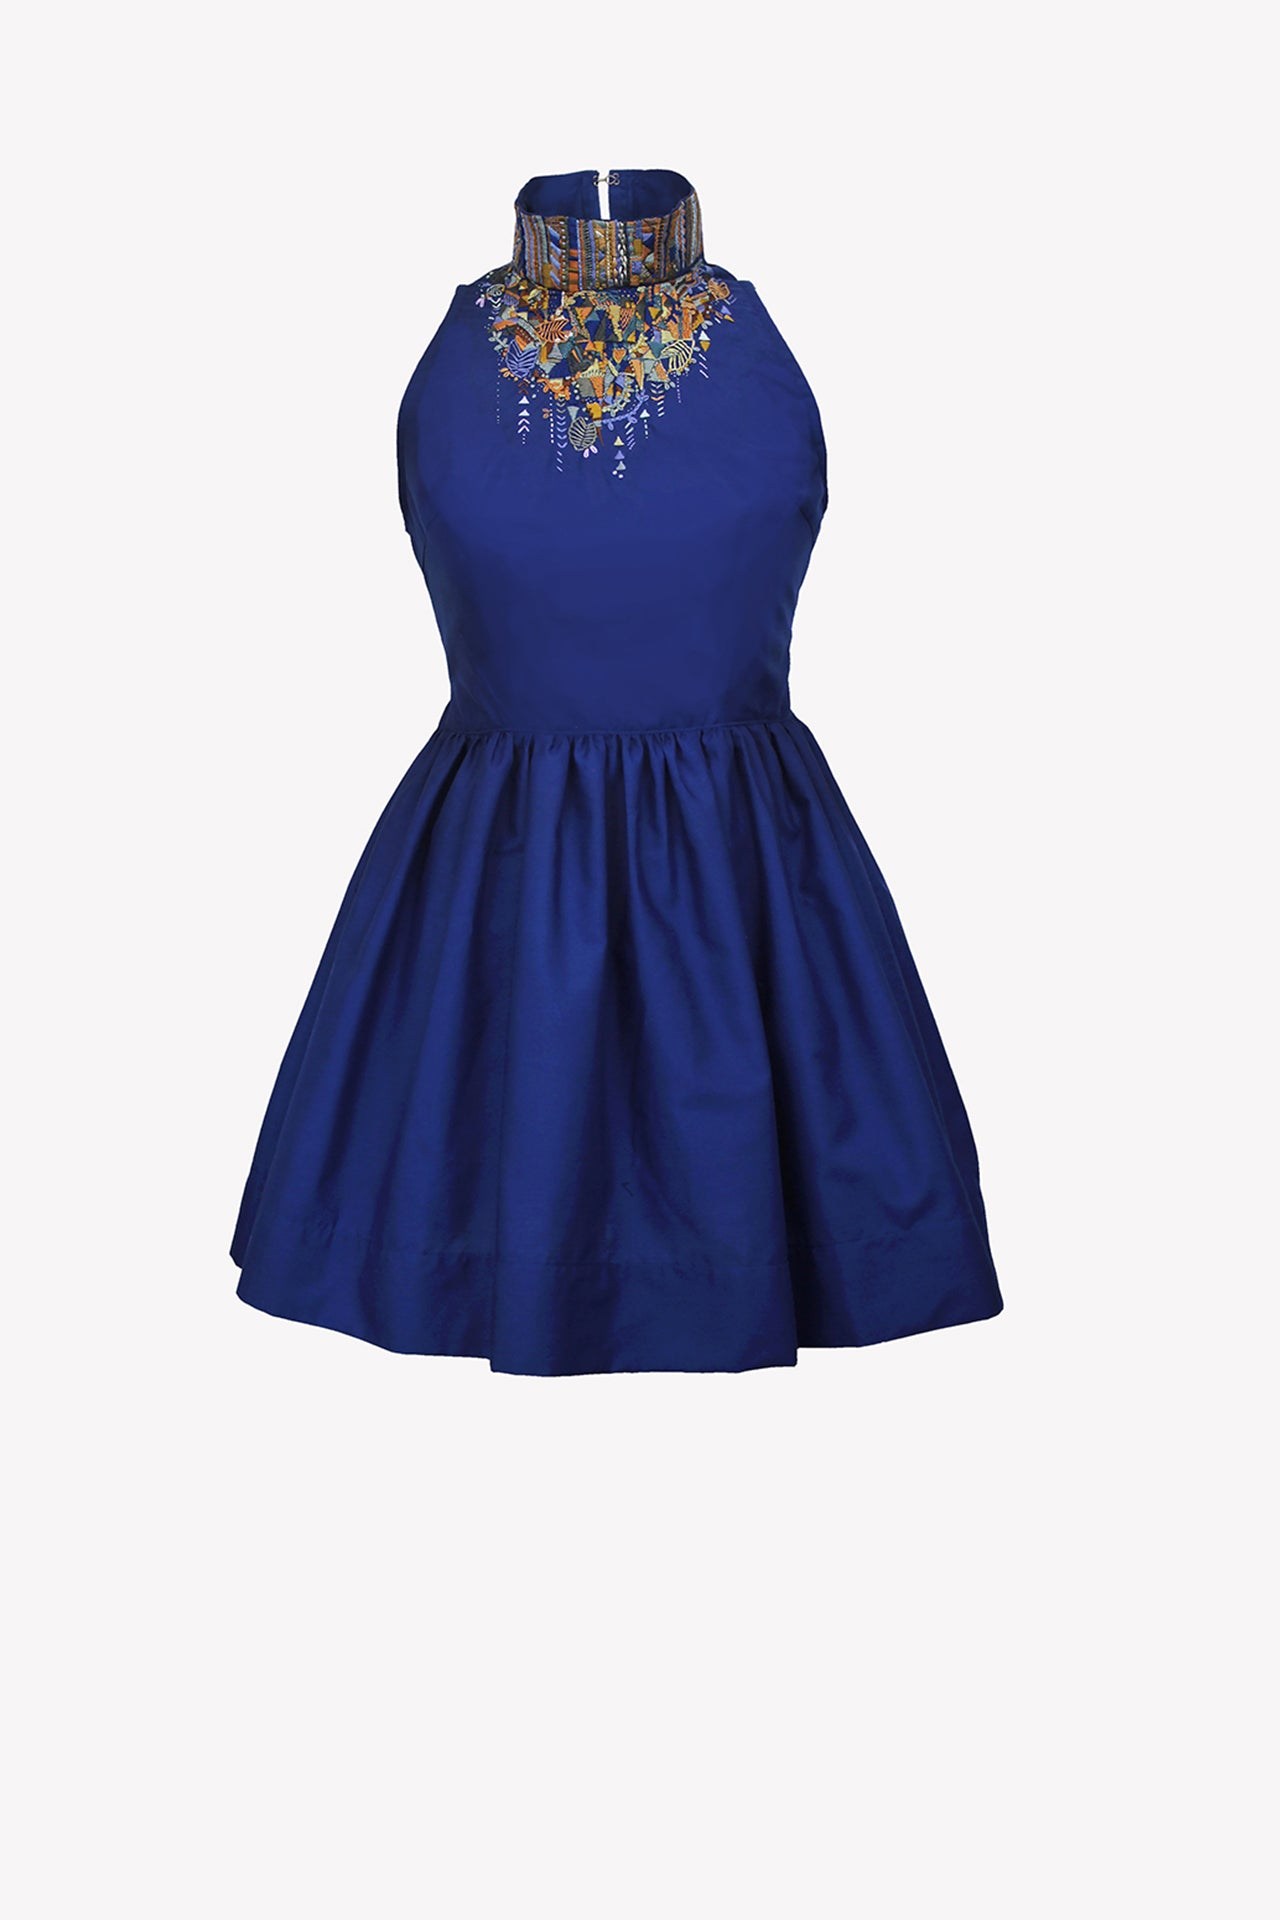 Navy blue dress with hand embroidery